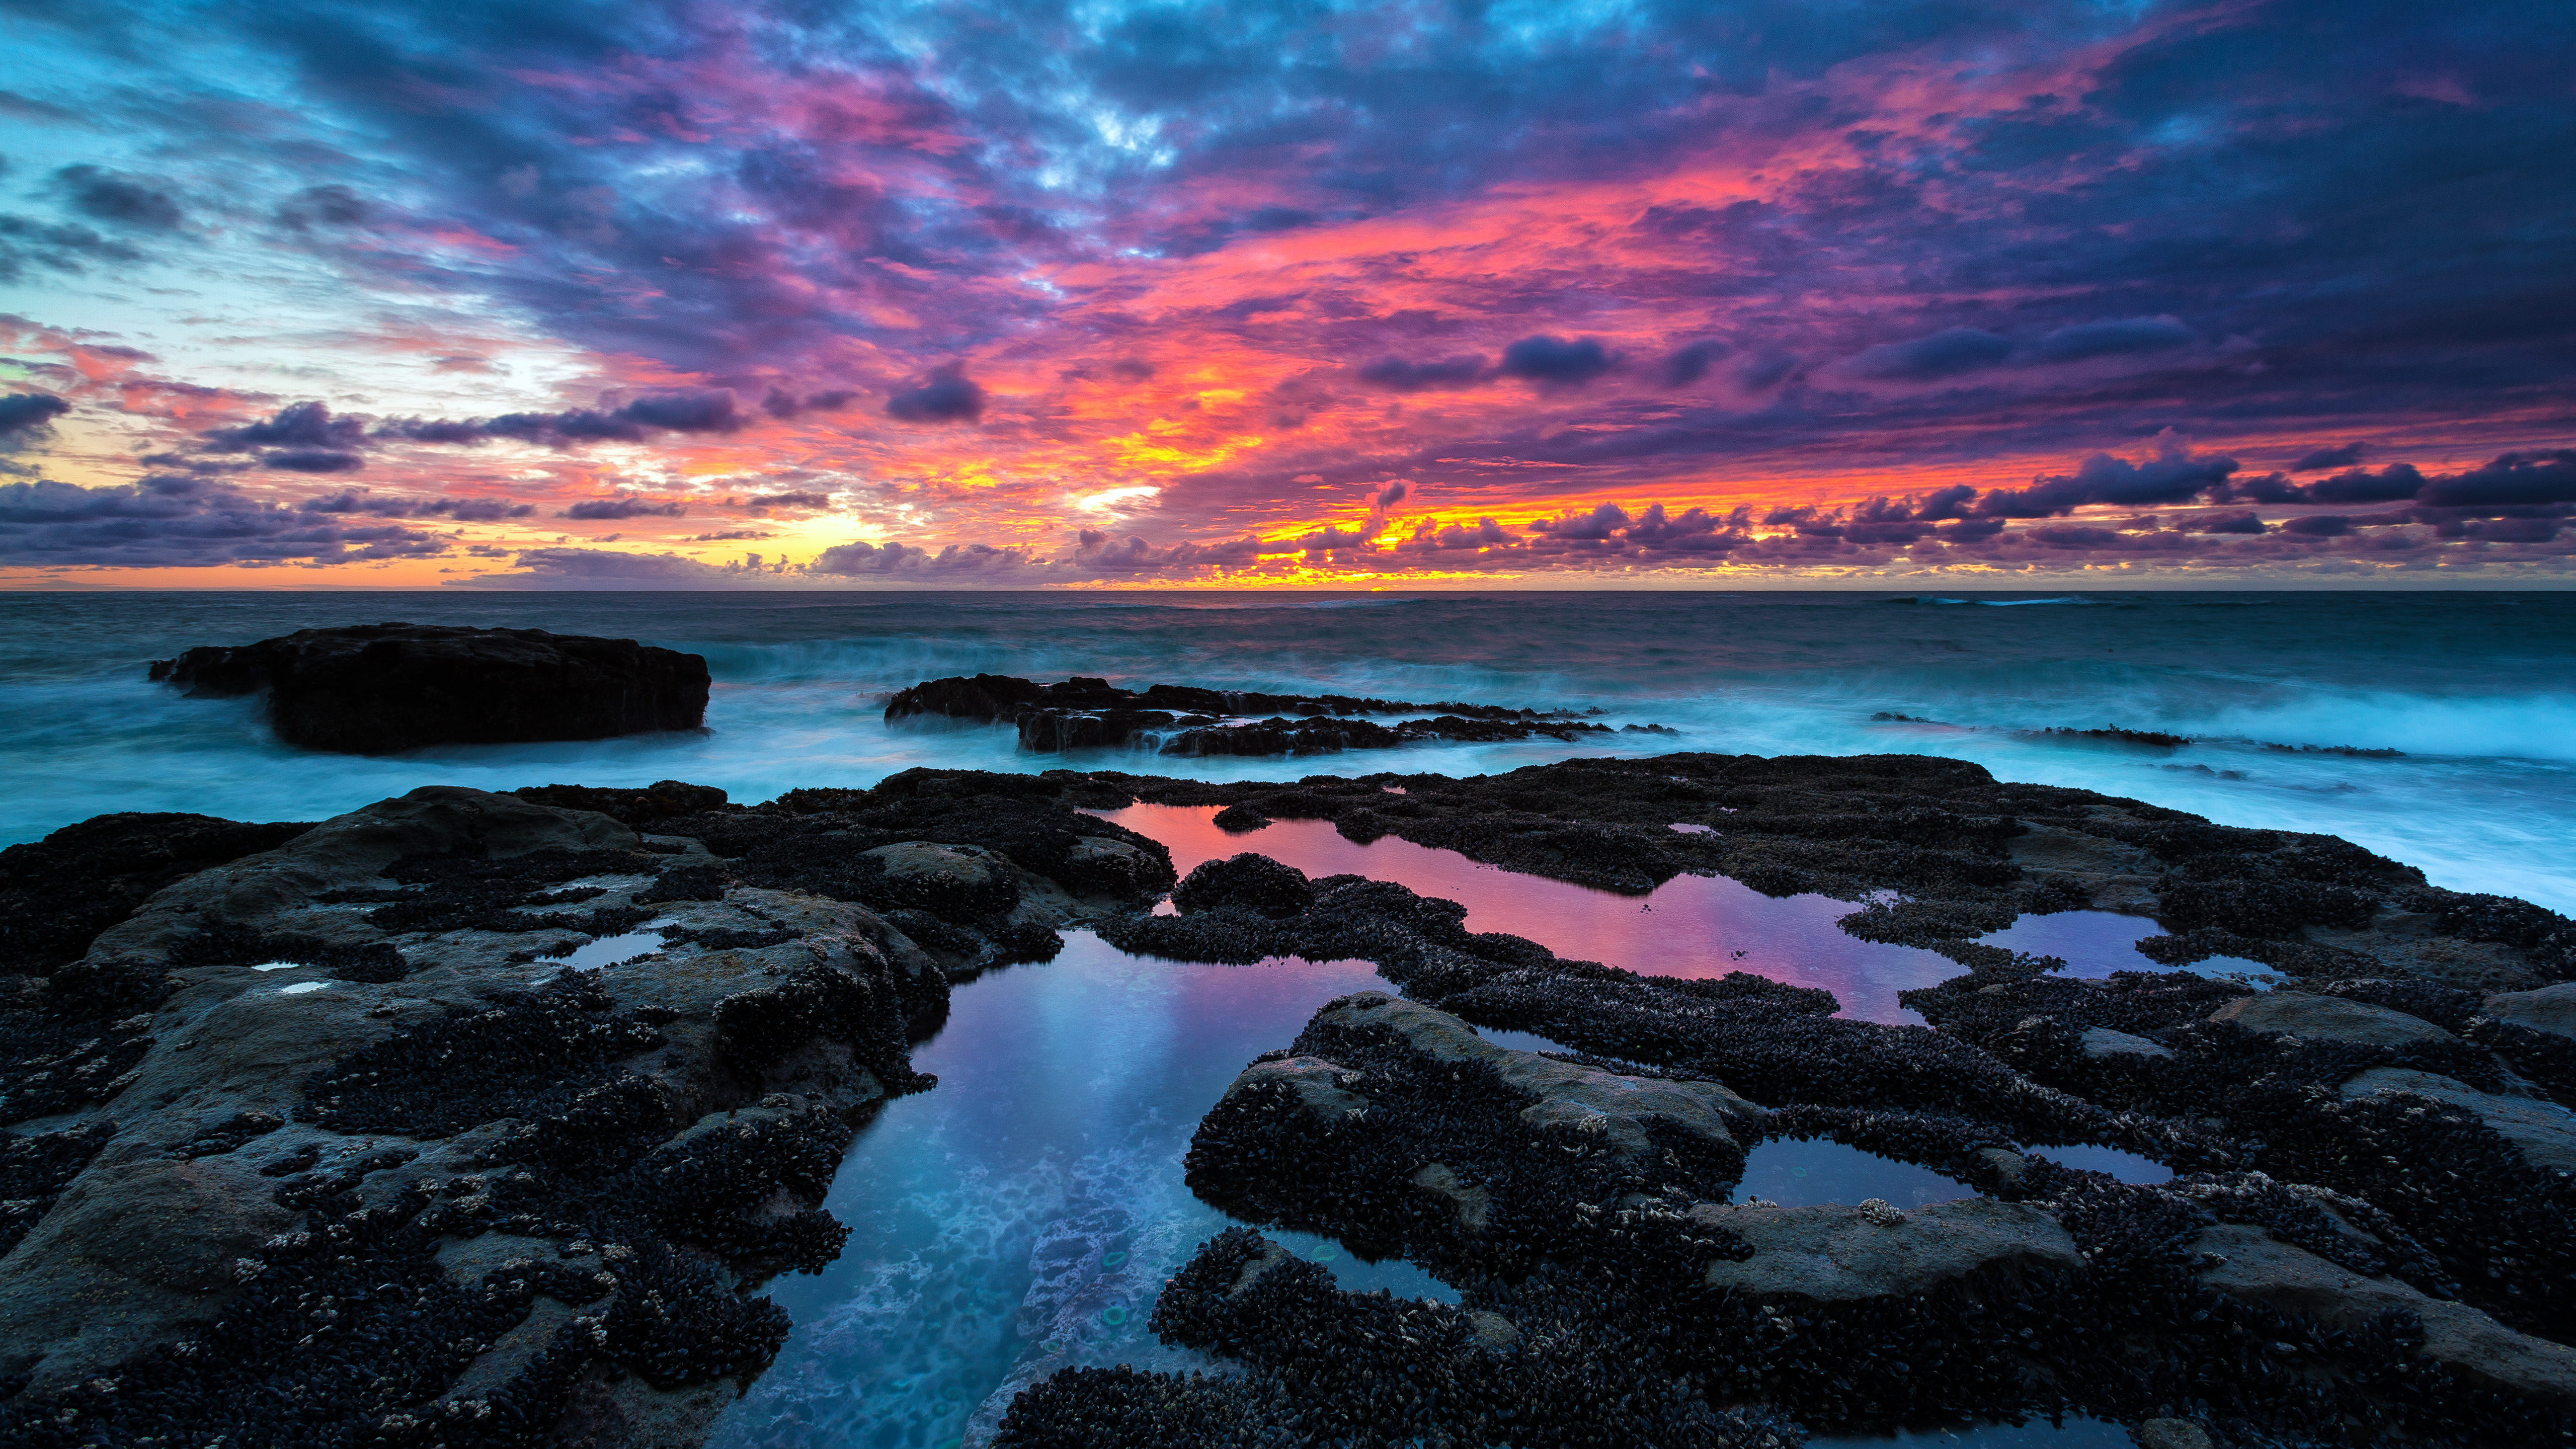 sunset sonnenuntergang meer ocean wallpaper - bullsh!ft ...